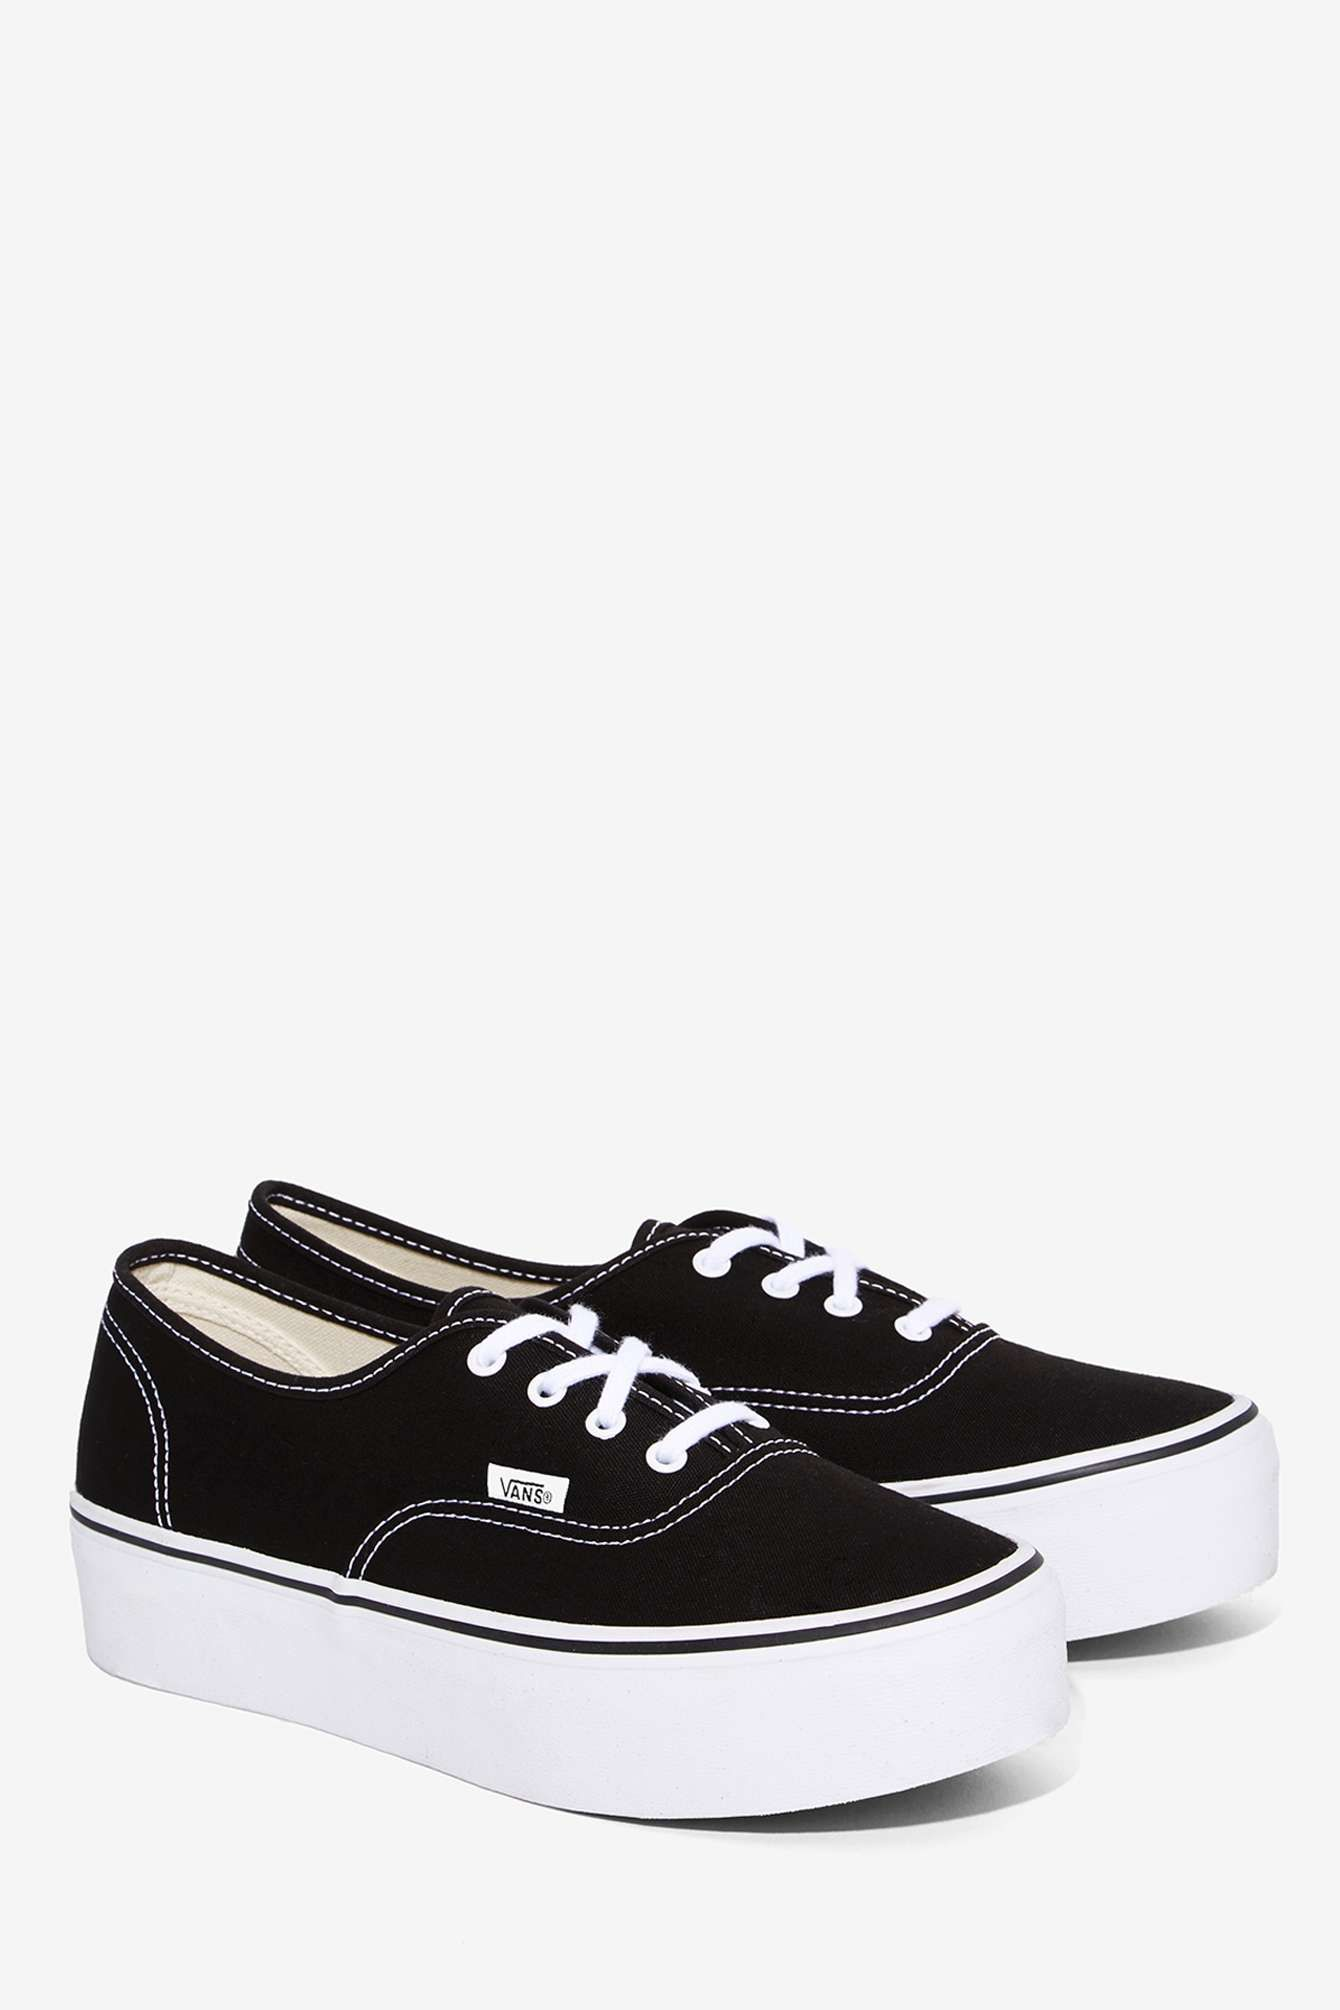 198621382f Vans Authentic Platform Sneaker - Black